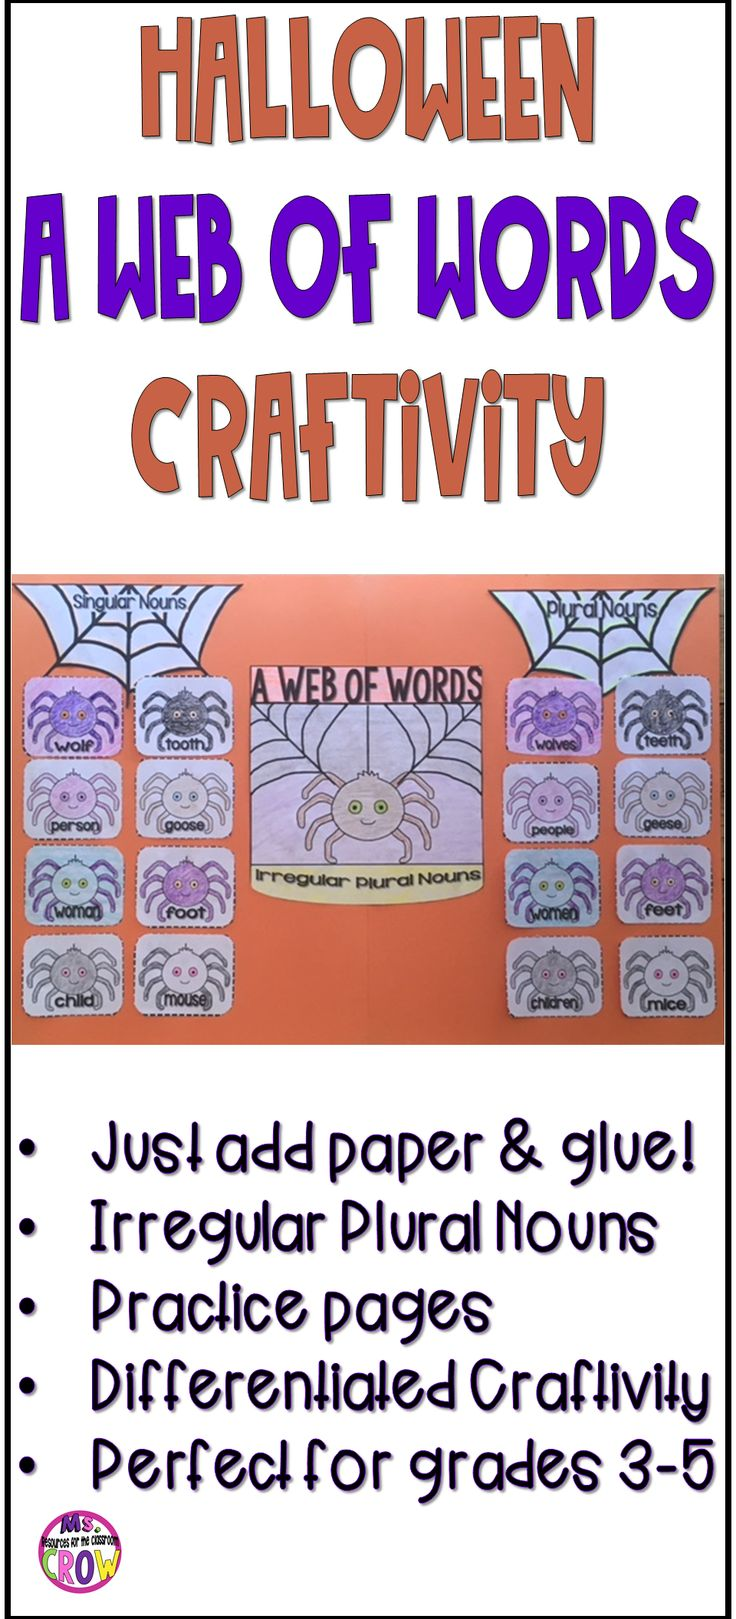 Workbooks making words plural worksheets : Best 25+ Irregular plural nouns ideas on Pinterest | Irregular ...